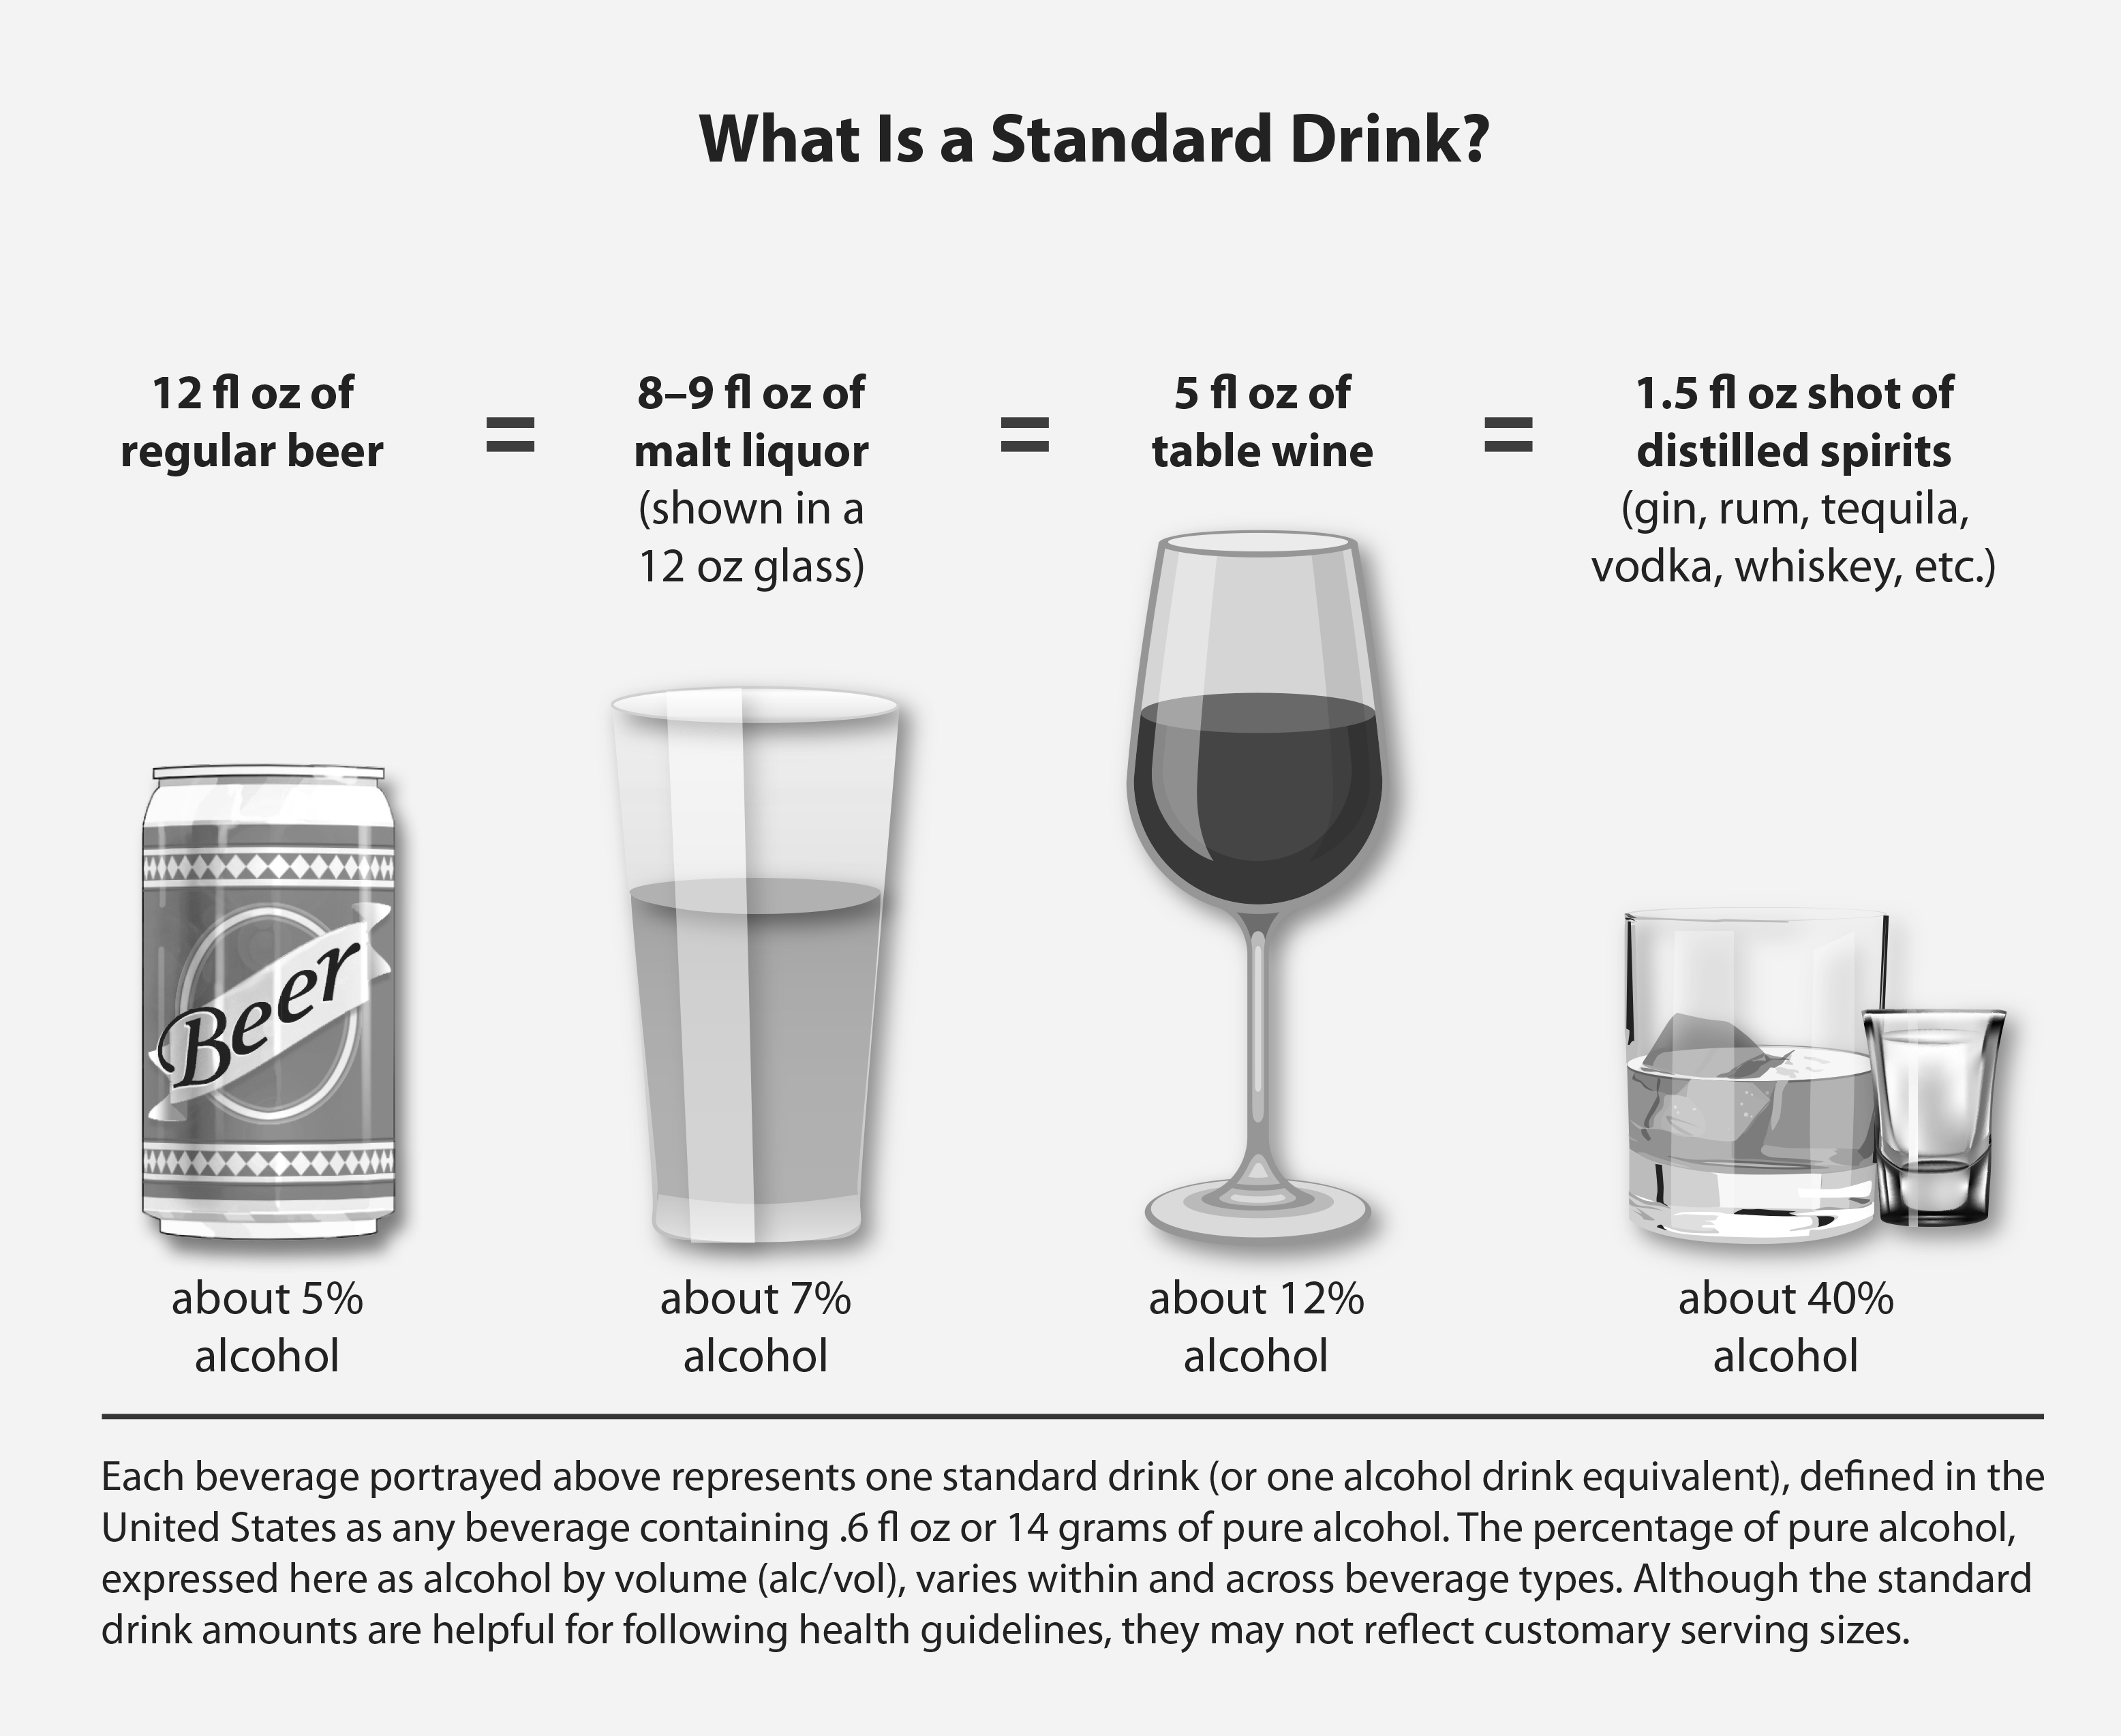 What is a standard drink? 12 fluid ounces of regular beer equals 8 to 9 fluid ounces of malt liquor showing in a 12 ounce glass, equals 5 fluid ounces of table wine, equals 1.5 fluid ounces of distilled spirits. Each beverage portrayed above represents one standard drink (or one alcohol drink equivalent), defined in the United States as any beverage containing .6 fluid ounces or 14 grams of pure alcohol. The percentage of pure alcohol, expressed here as alcohol by volume (alc/vol), varies within and across beverage types. Although the standard drink amounts are helpful for following health guidelines, they may not reflect customary serving sizes.